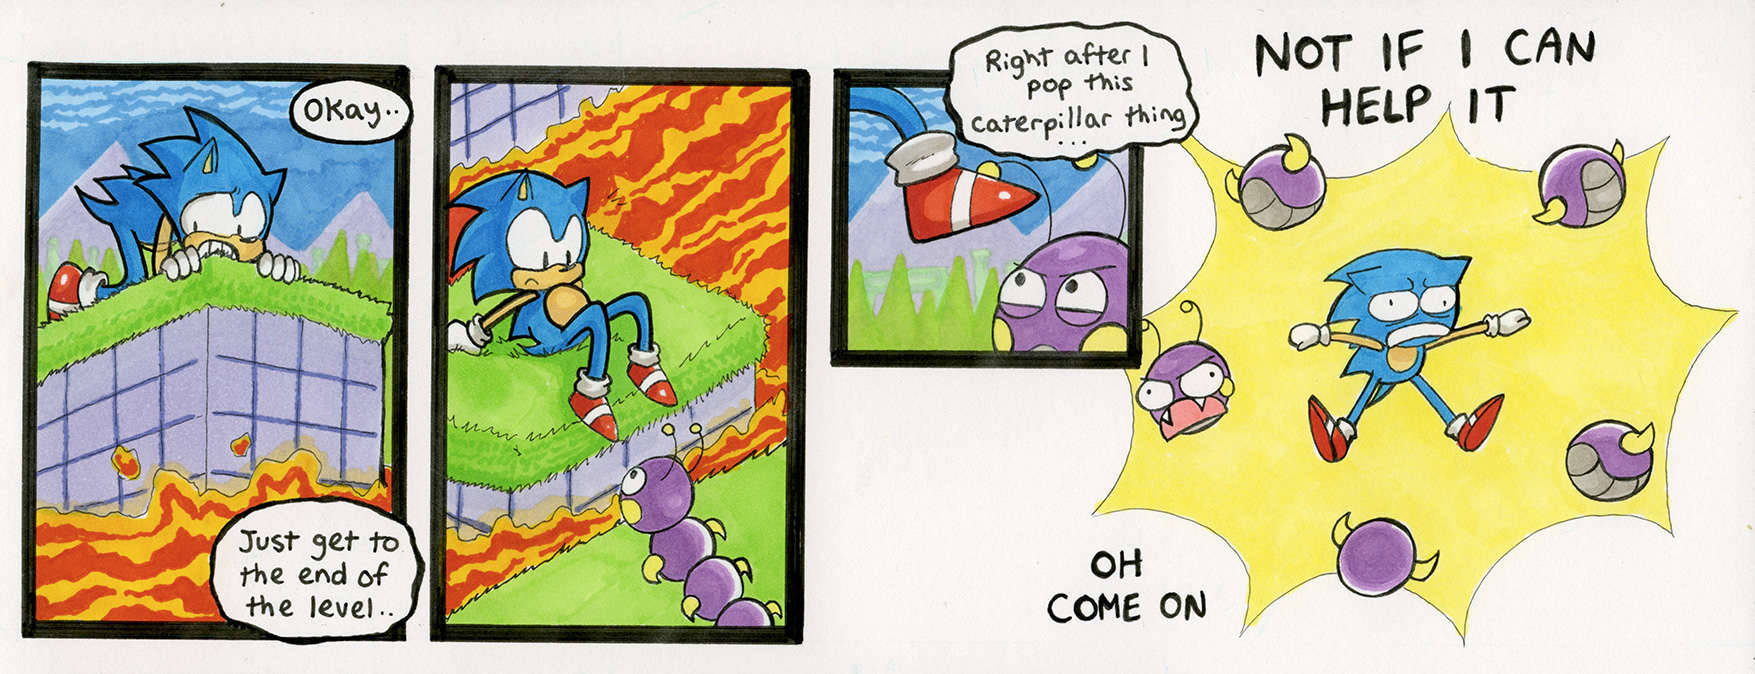 Sonic the Hedgehog 1: Marble Zone, Act 1